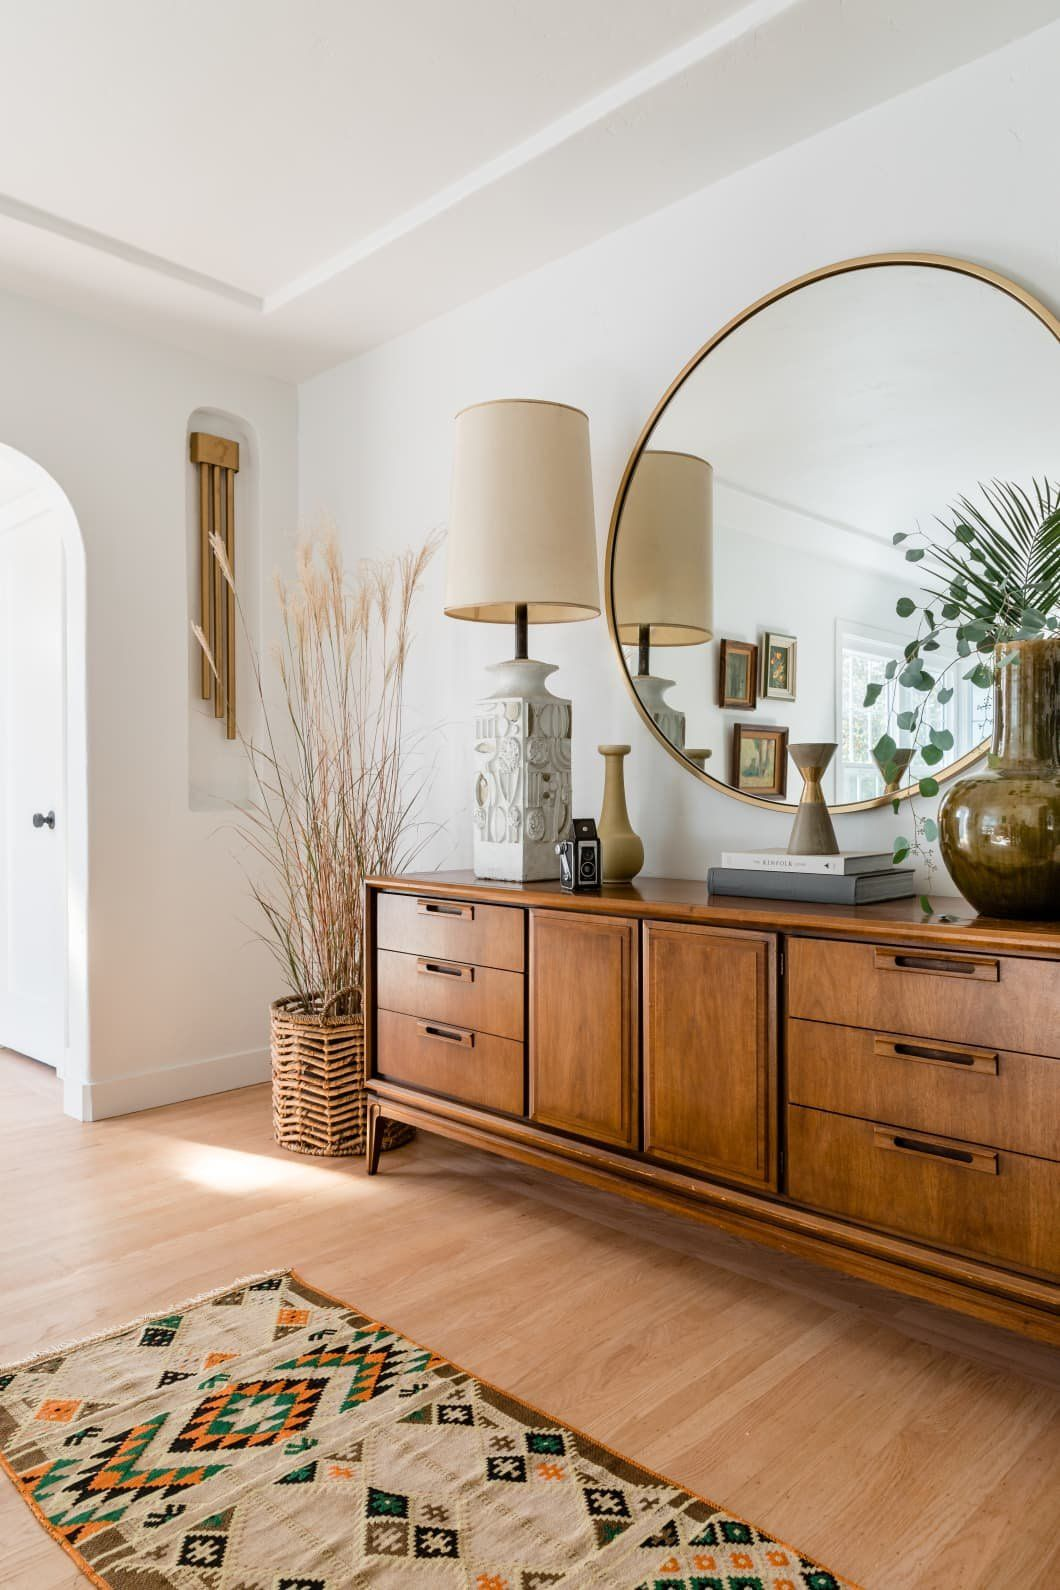 A Hollywood Bungalow Style House Has Some Surprisingly Affordable Decor Ideas In 2020 Home Decor Decor House Interior